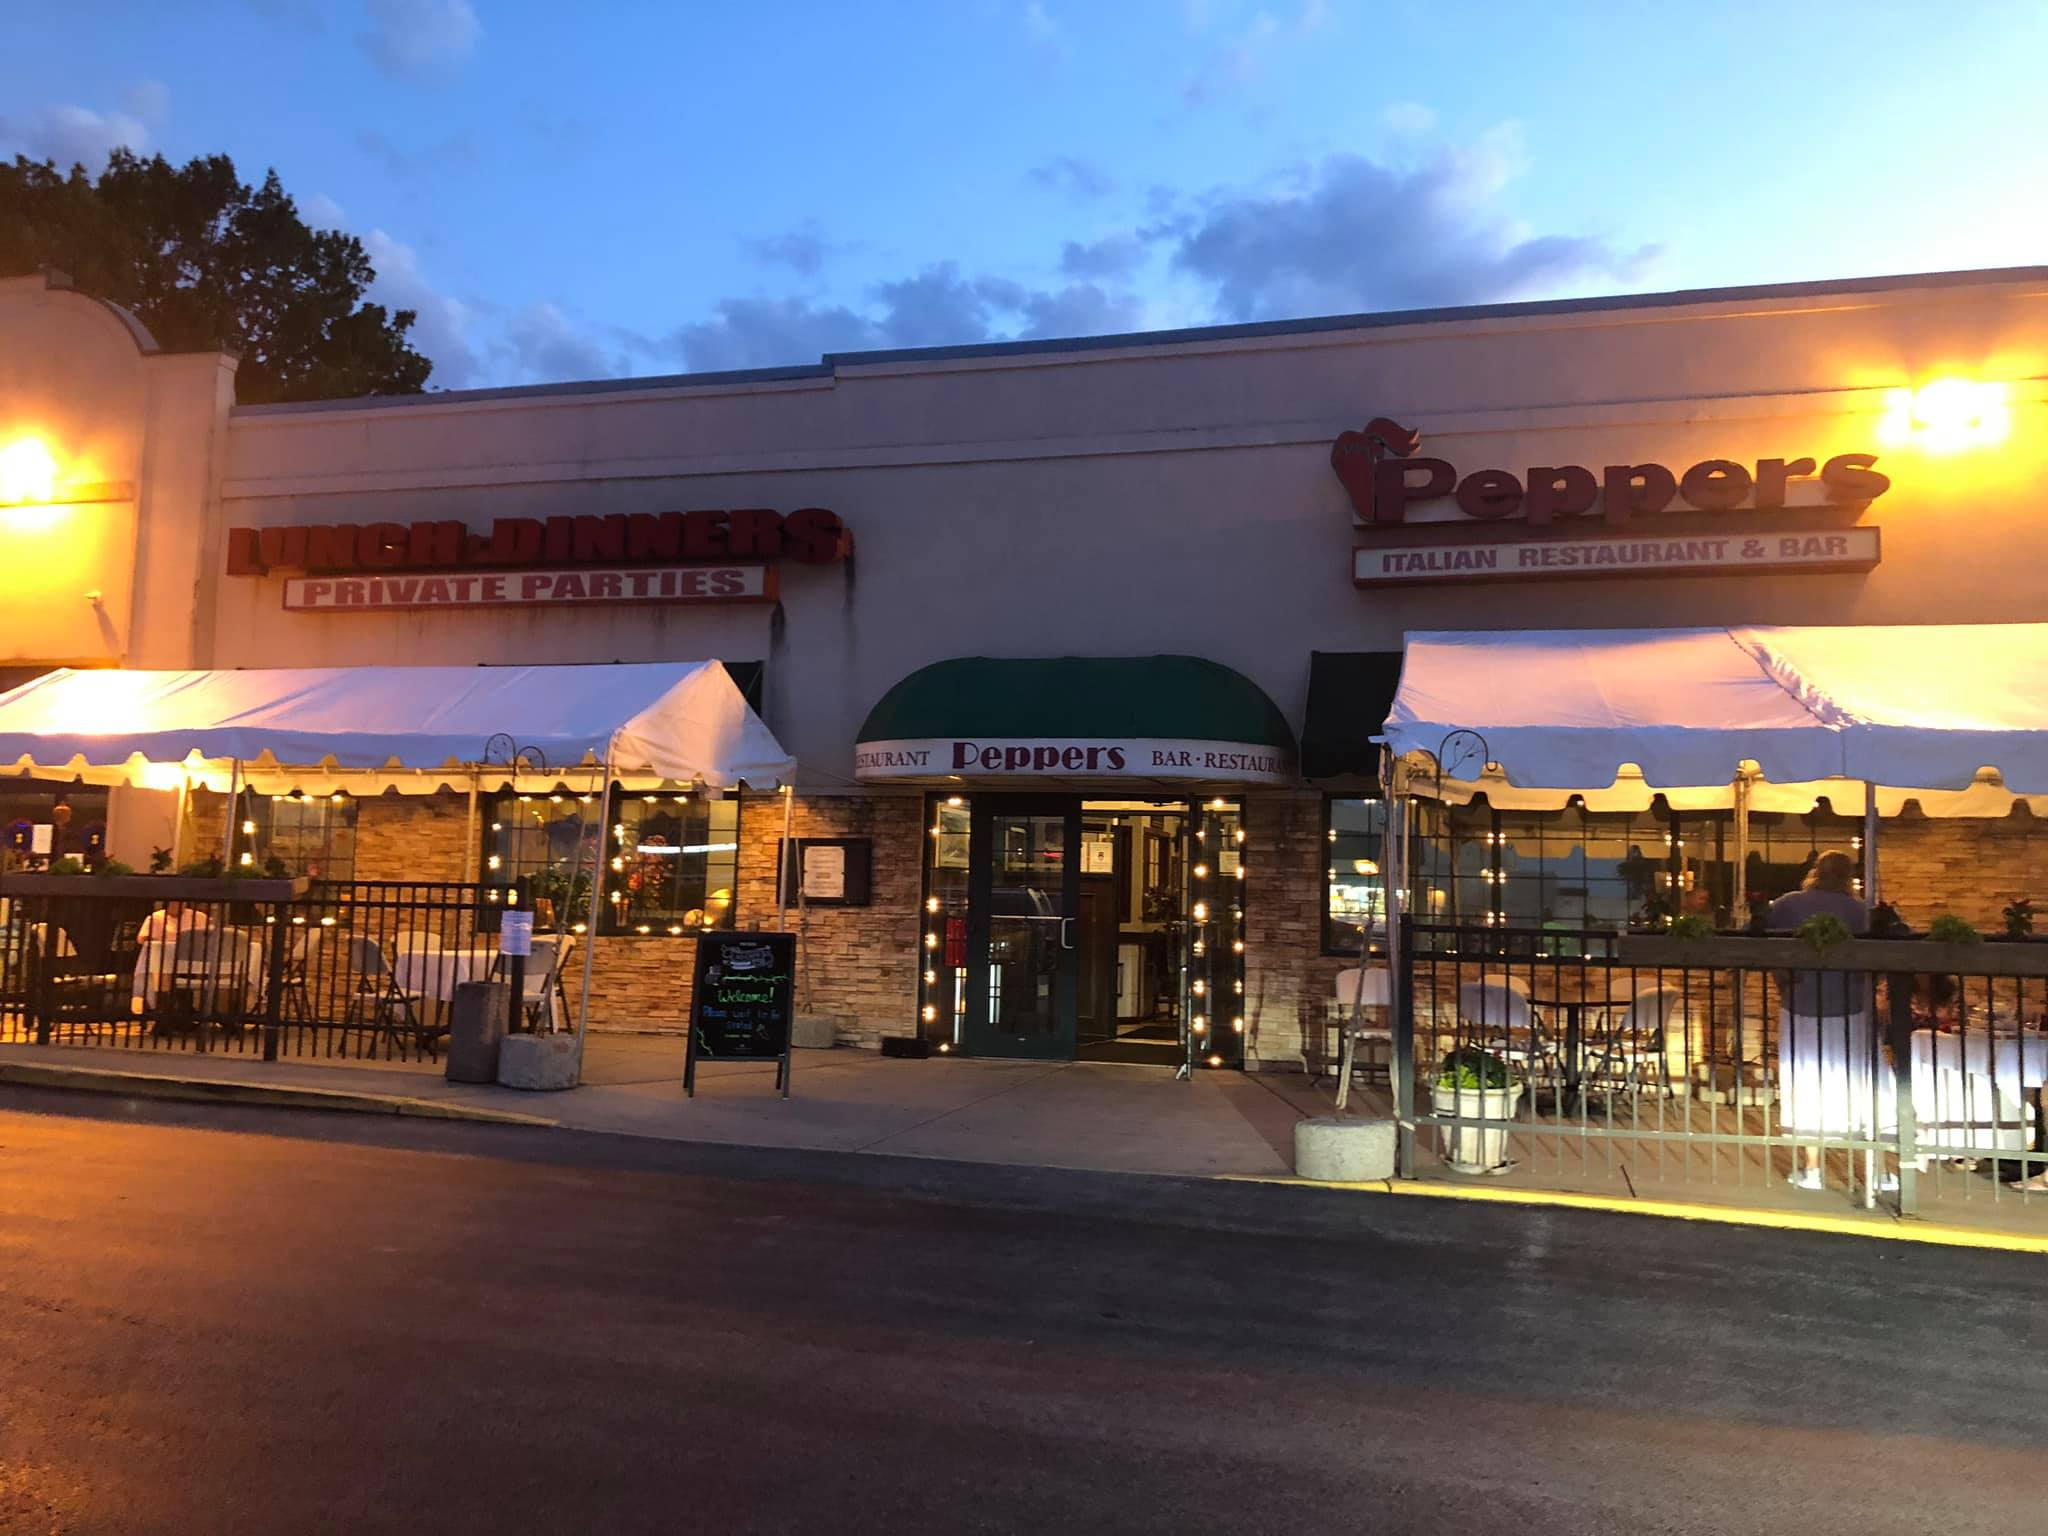 With Outdoor Dining Now Available, King of Prussia Restaurants Seeing Promising Bump in Business, Revenue